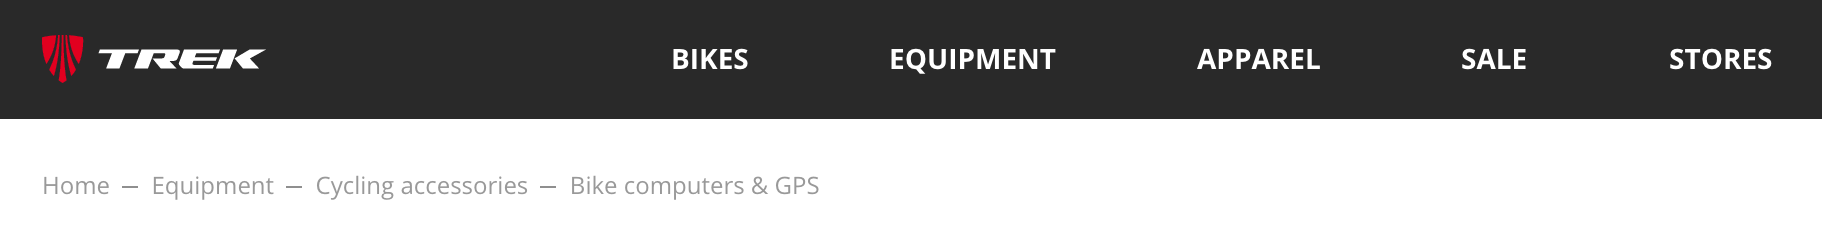 Navigational breadcrumbs on TrekBikes.com